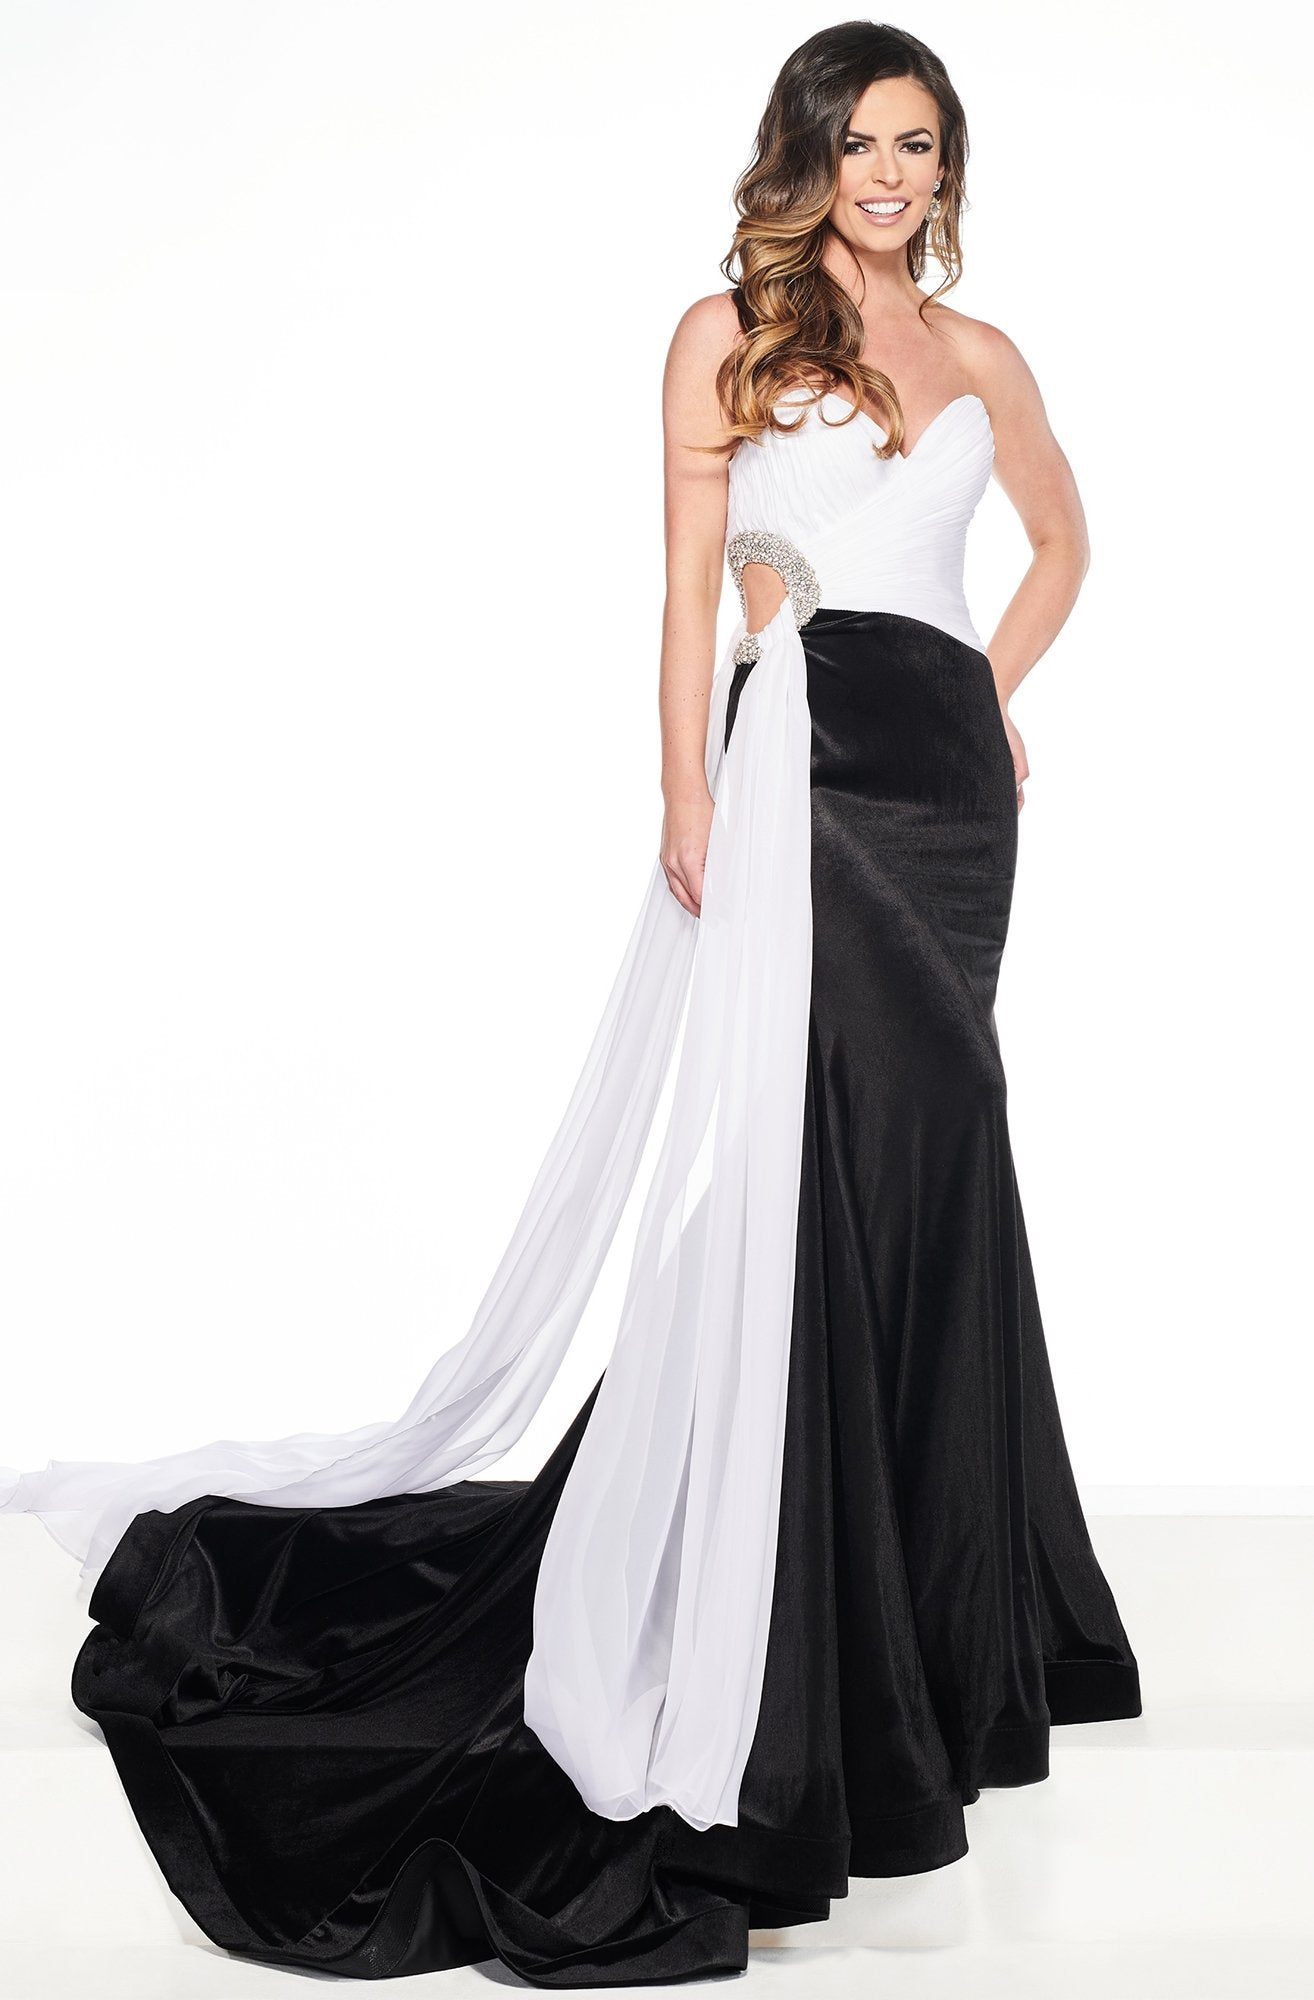 Rachel Allan Primadonna - 5083 Embellished Two Tone Trumpet Dress In Black and White